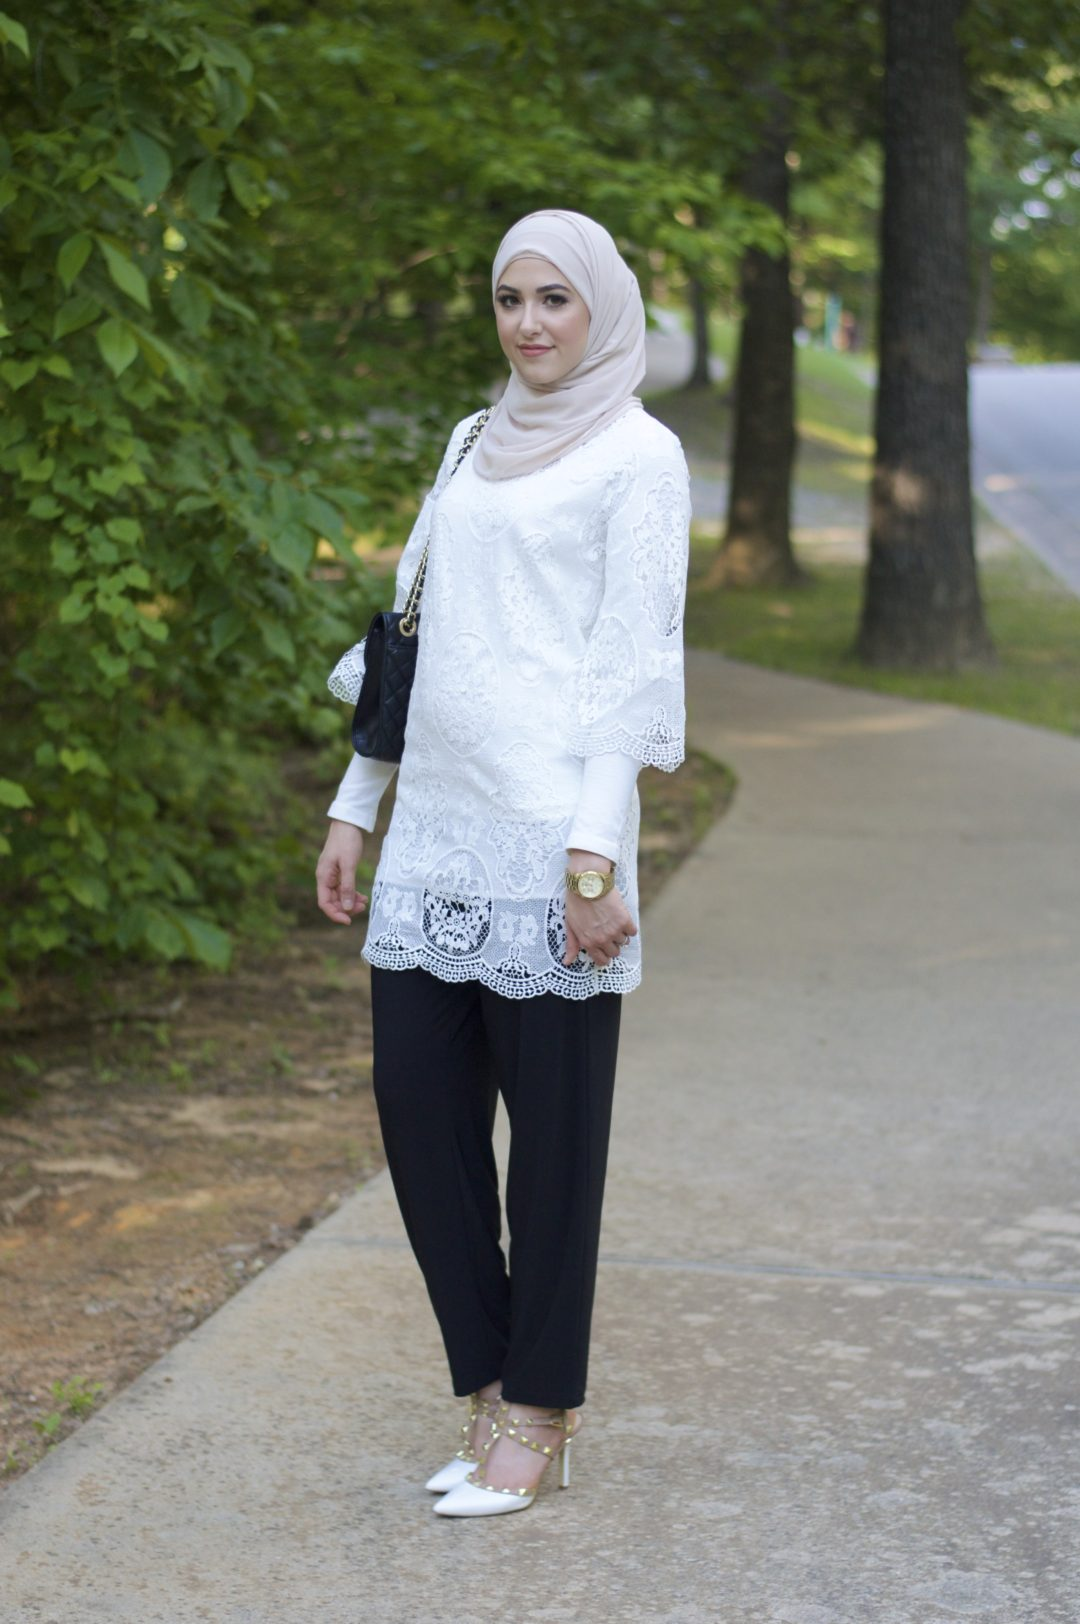 5 Tips for Choosing your Hijabi Graduation Outfit – With Love, Leena.